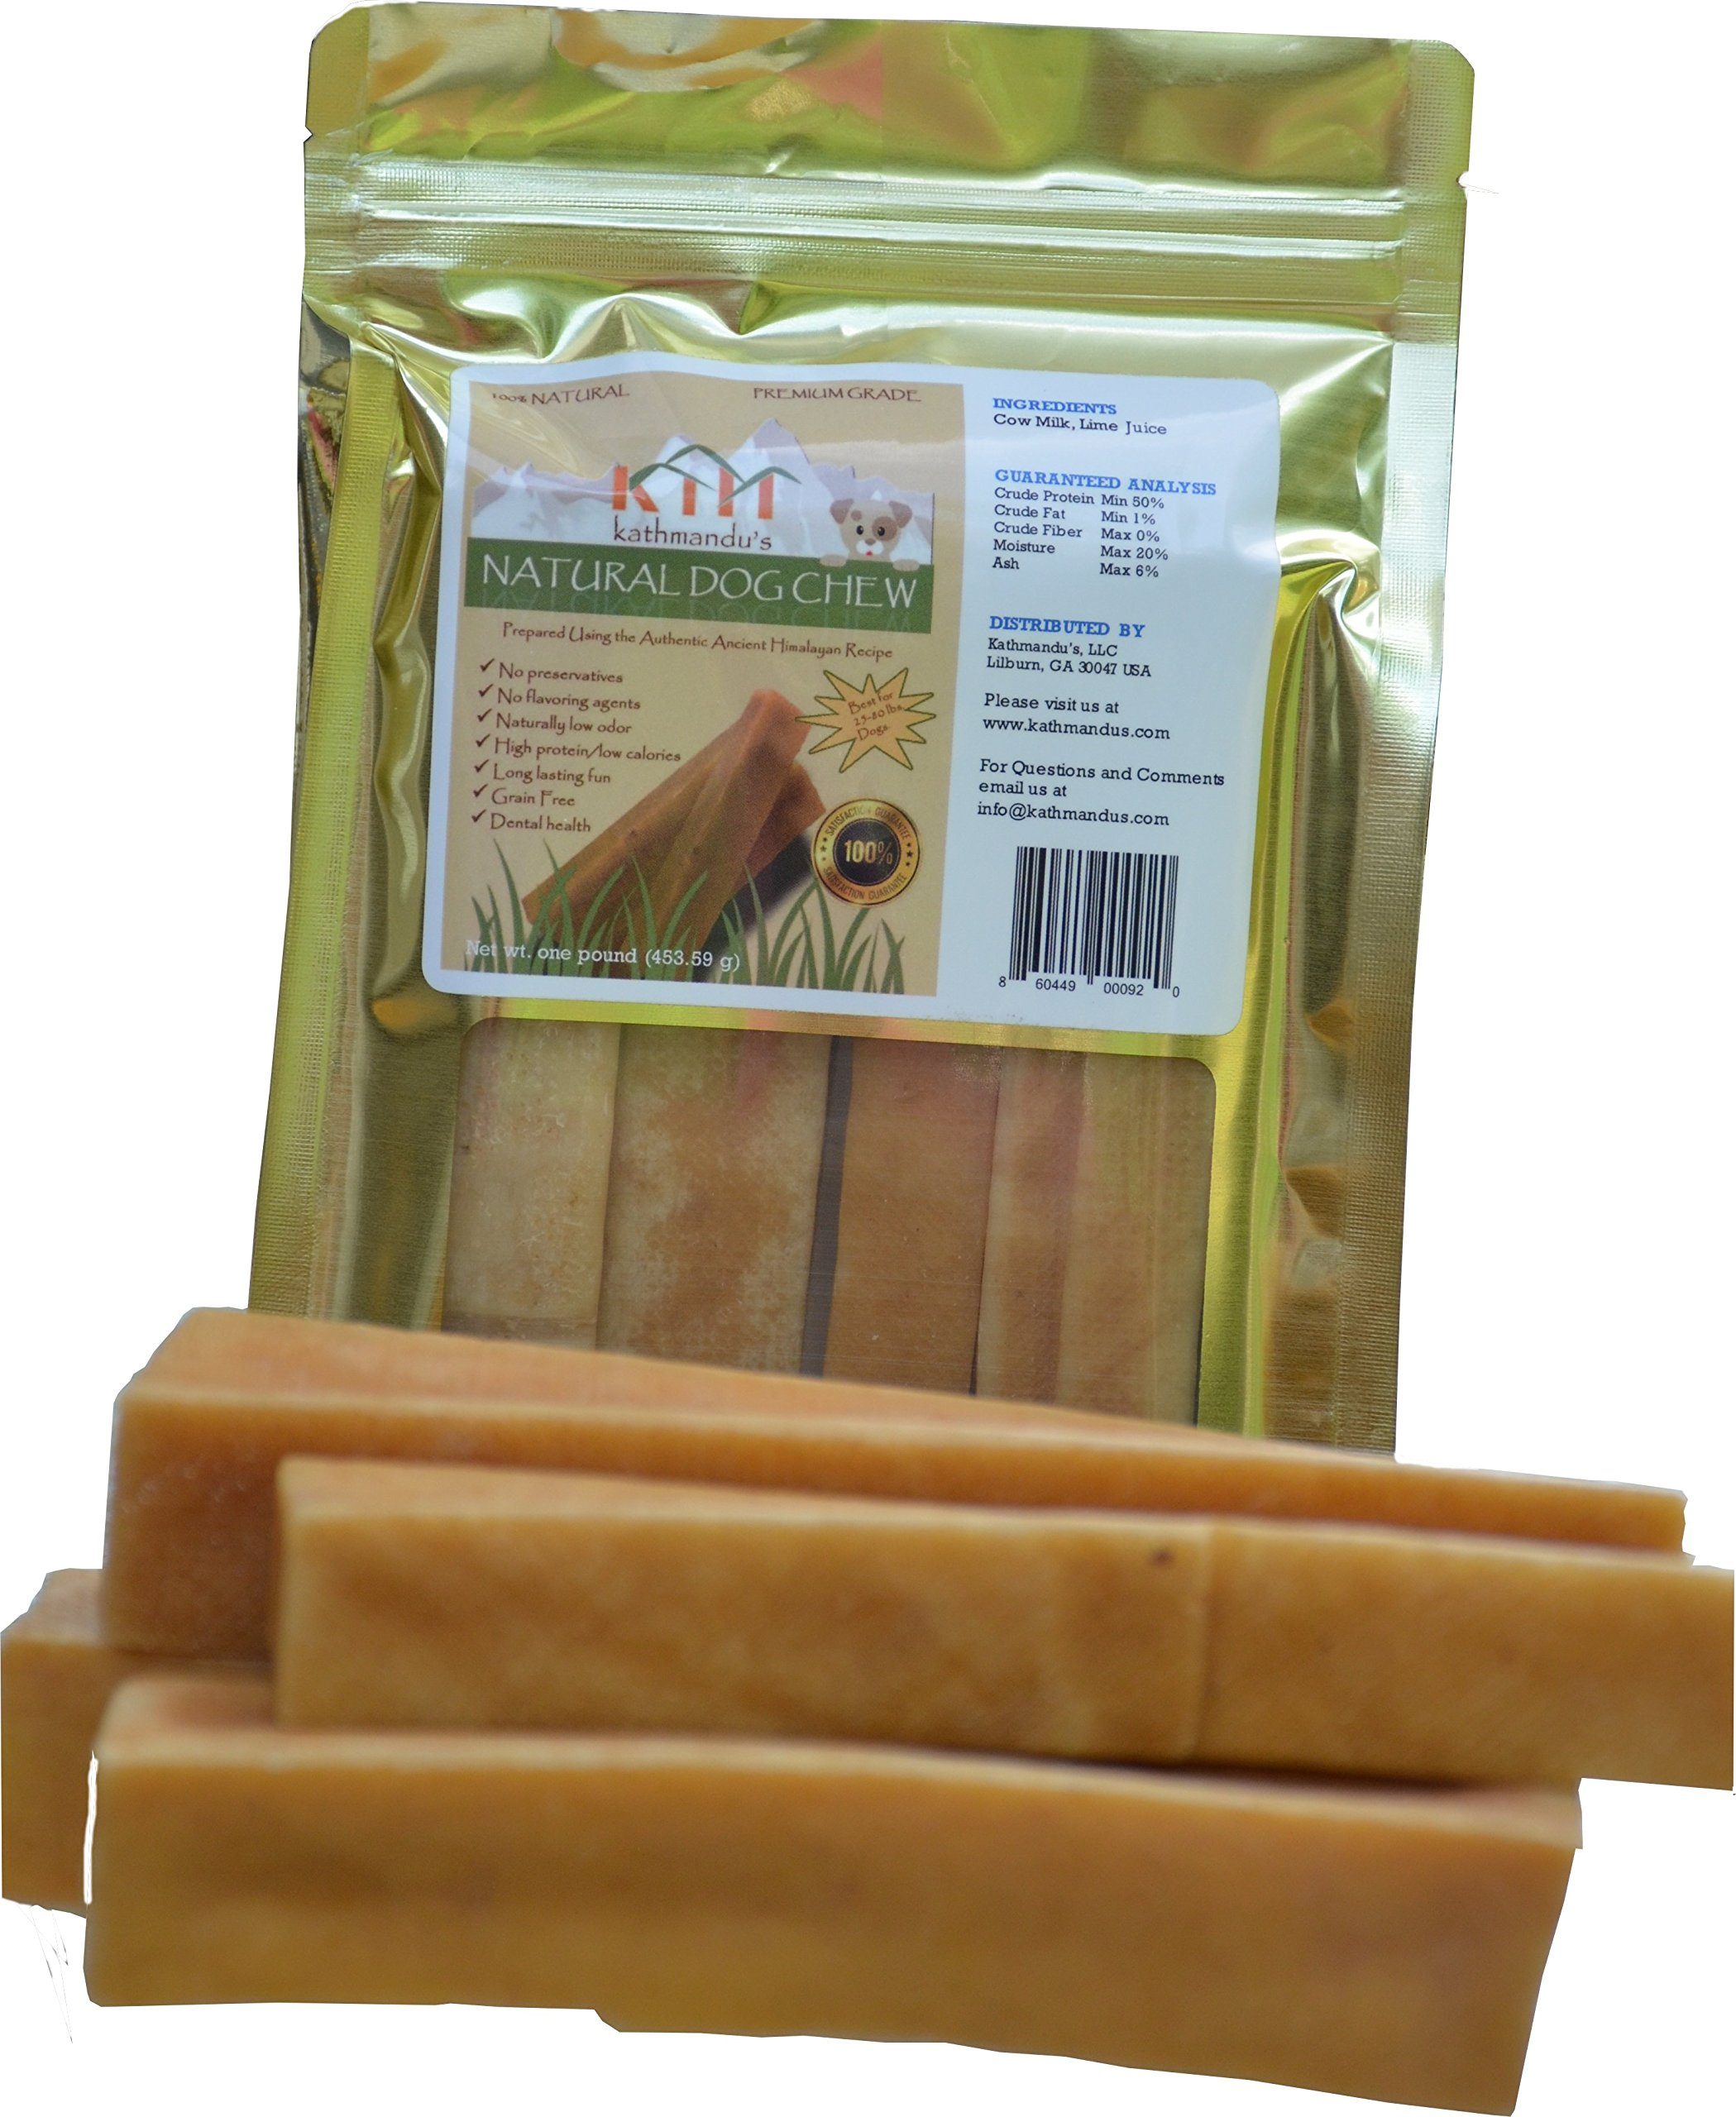 KATHMANDU'S Himalayan Yak Natural Dog Chew, Longlasting, Odorless, Splinterless, Smoked Hard Cheese Dog Treat from Pristine Himalayan Foothill, Proudly Packaged in USA, Small, Medium, Large, XLarge